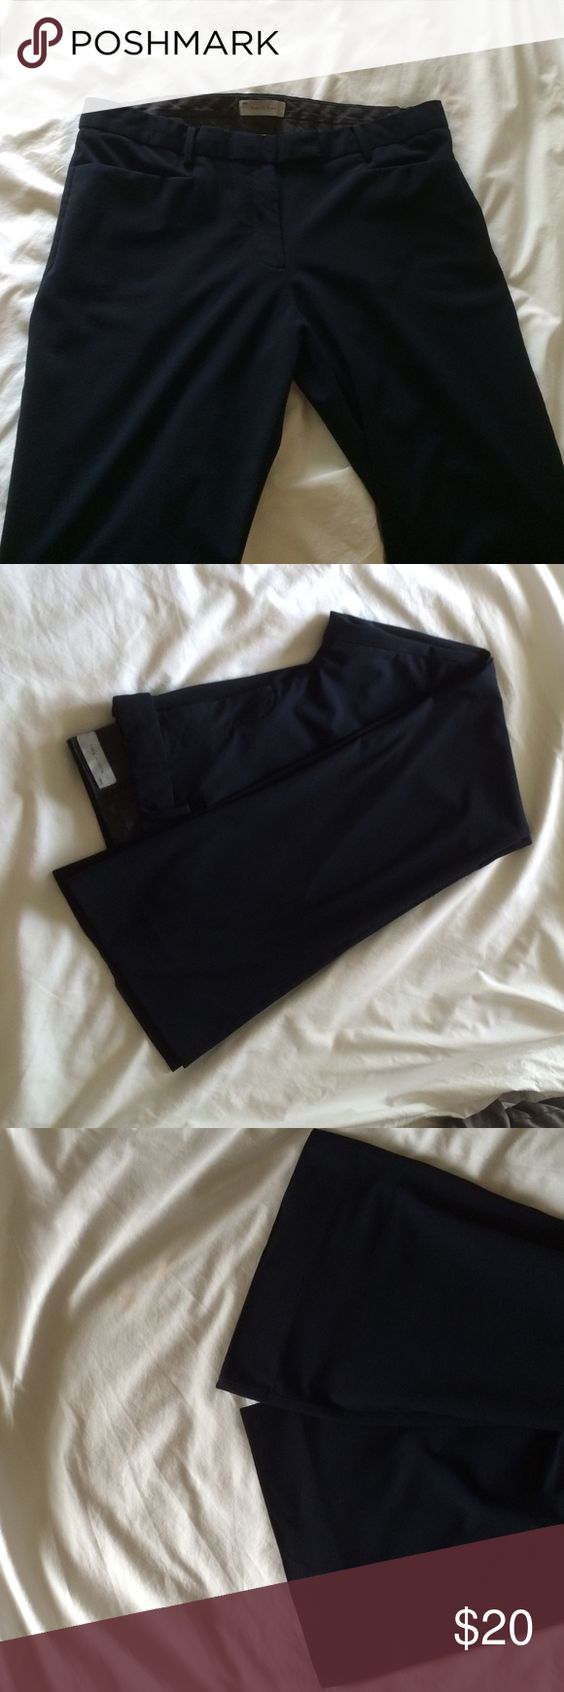 GAP Modern Boot Pant Navy 14R Gently Worn These pants are perfect for work.  They come out of the dryer ready to wear.  They are so easy!   Gently worn.  A little wear on bottom but other than that they are perfect.  They no longer fit me. Gap Pants Boot Cut & Flare